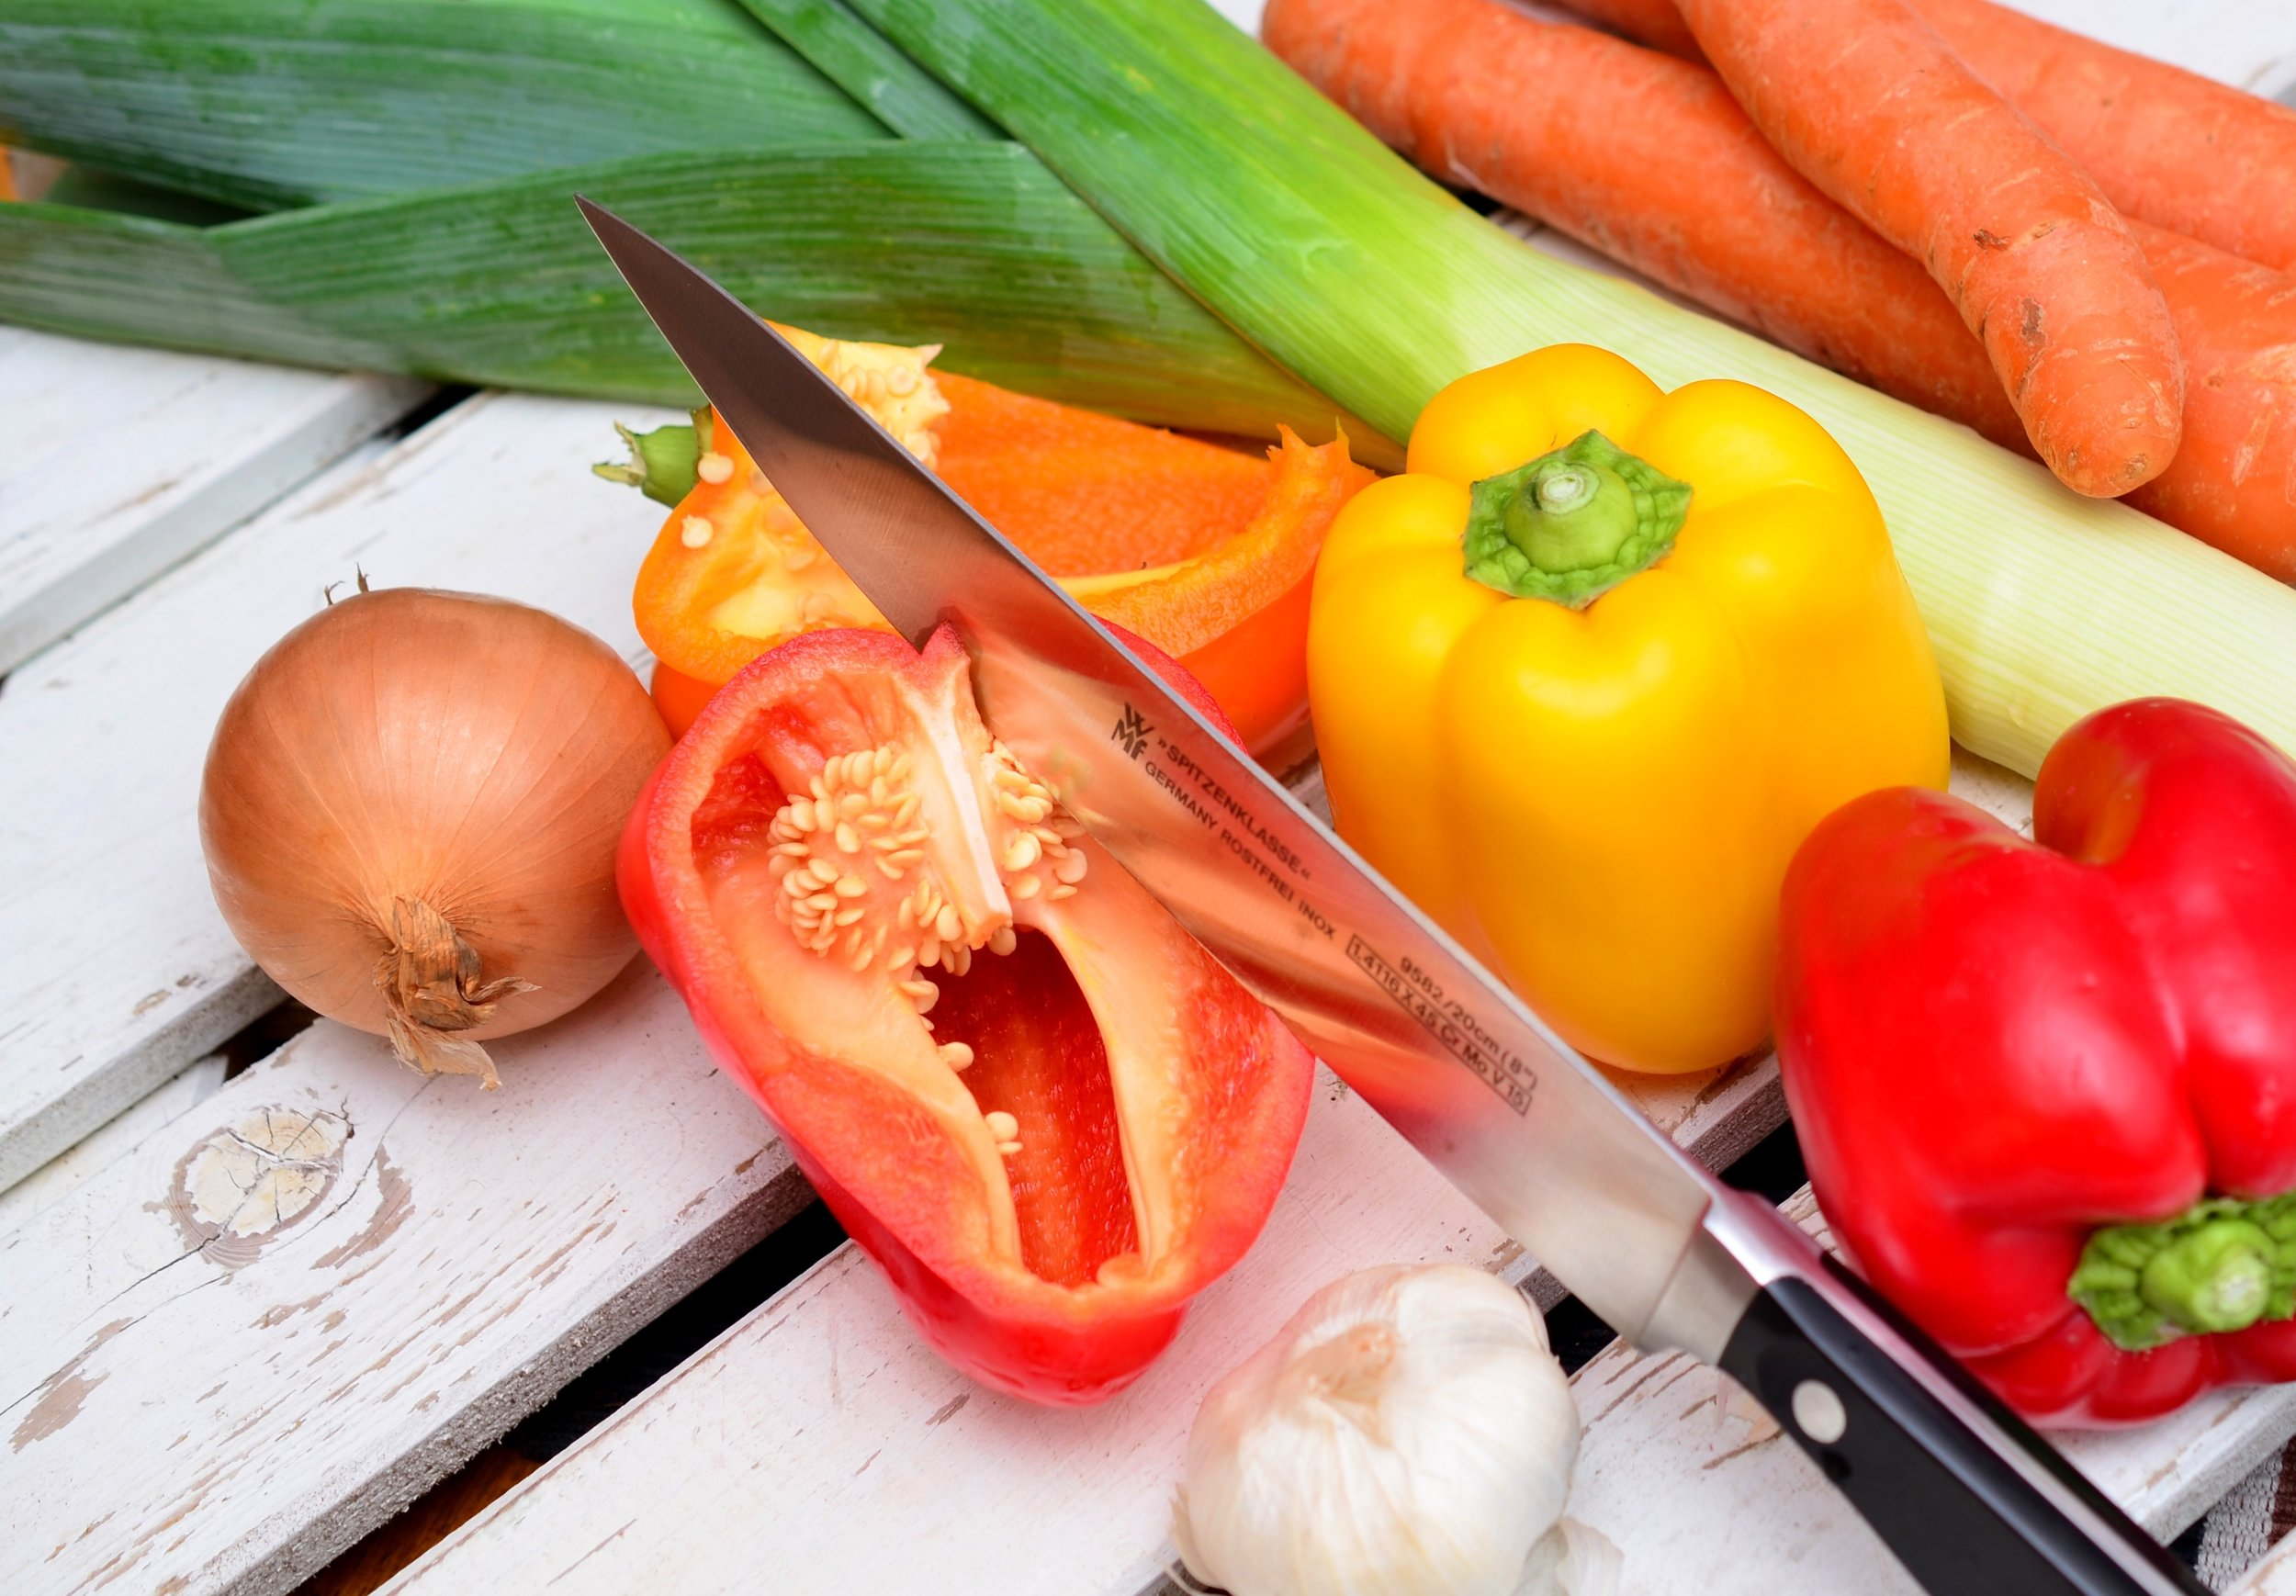 Healthy Cooking and Diet